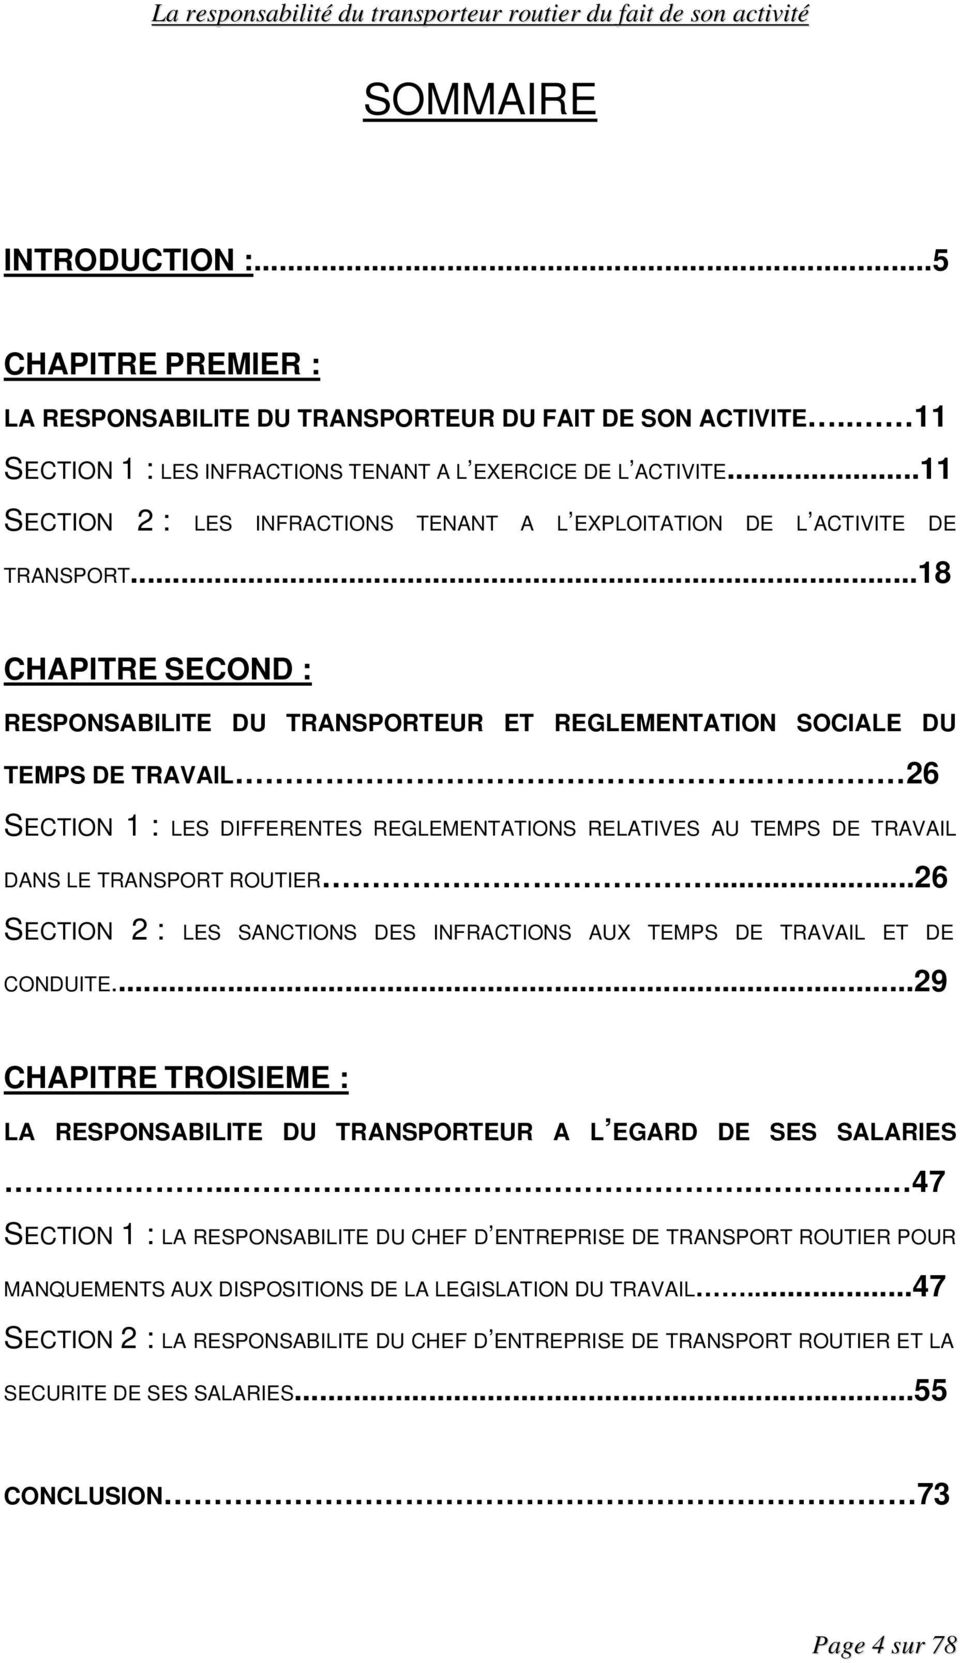 26 SECTION 1 : LES DIFFERENTES REGLEMENTATIONS RELATIVES AU TEMPS DE TRAVAIL DANS LE TRANSPORT ROUTIER...26 SECTION 2 : LES SANCTIONS DES INFRACTIONS AUX TEMPS DE TRAVAIL ET DE CONDUITE.